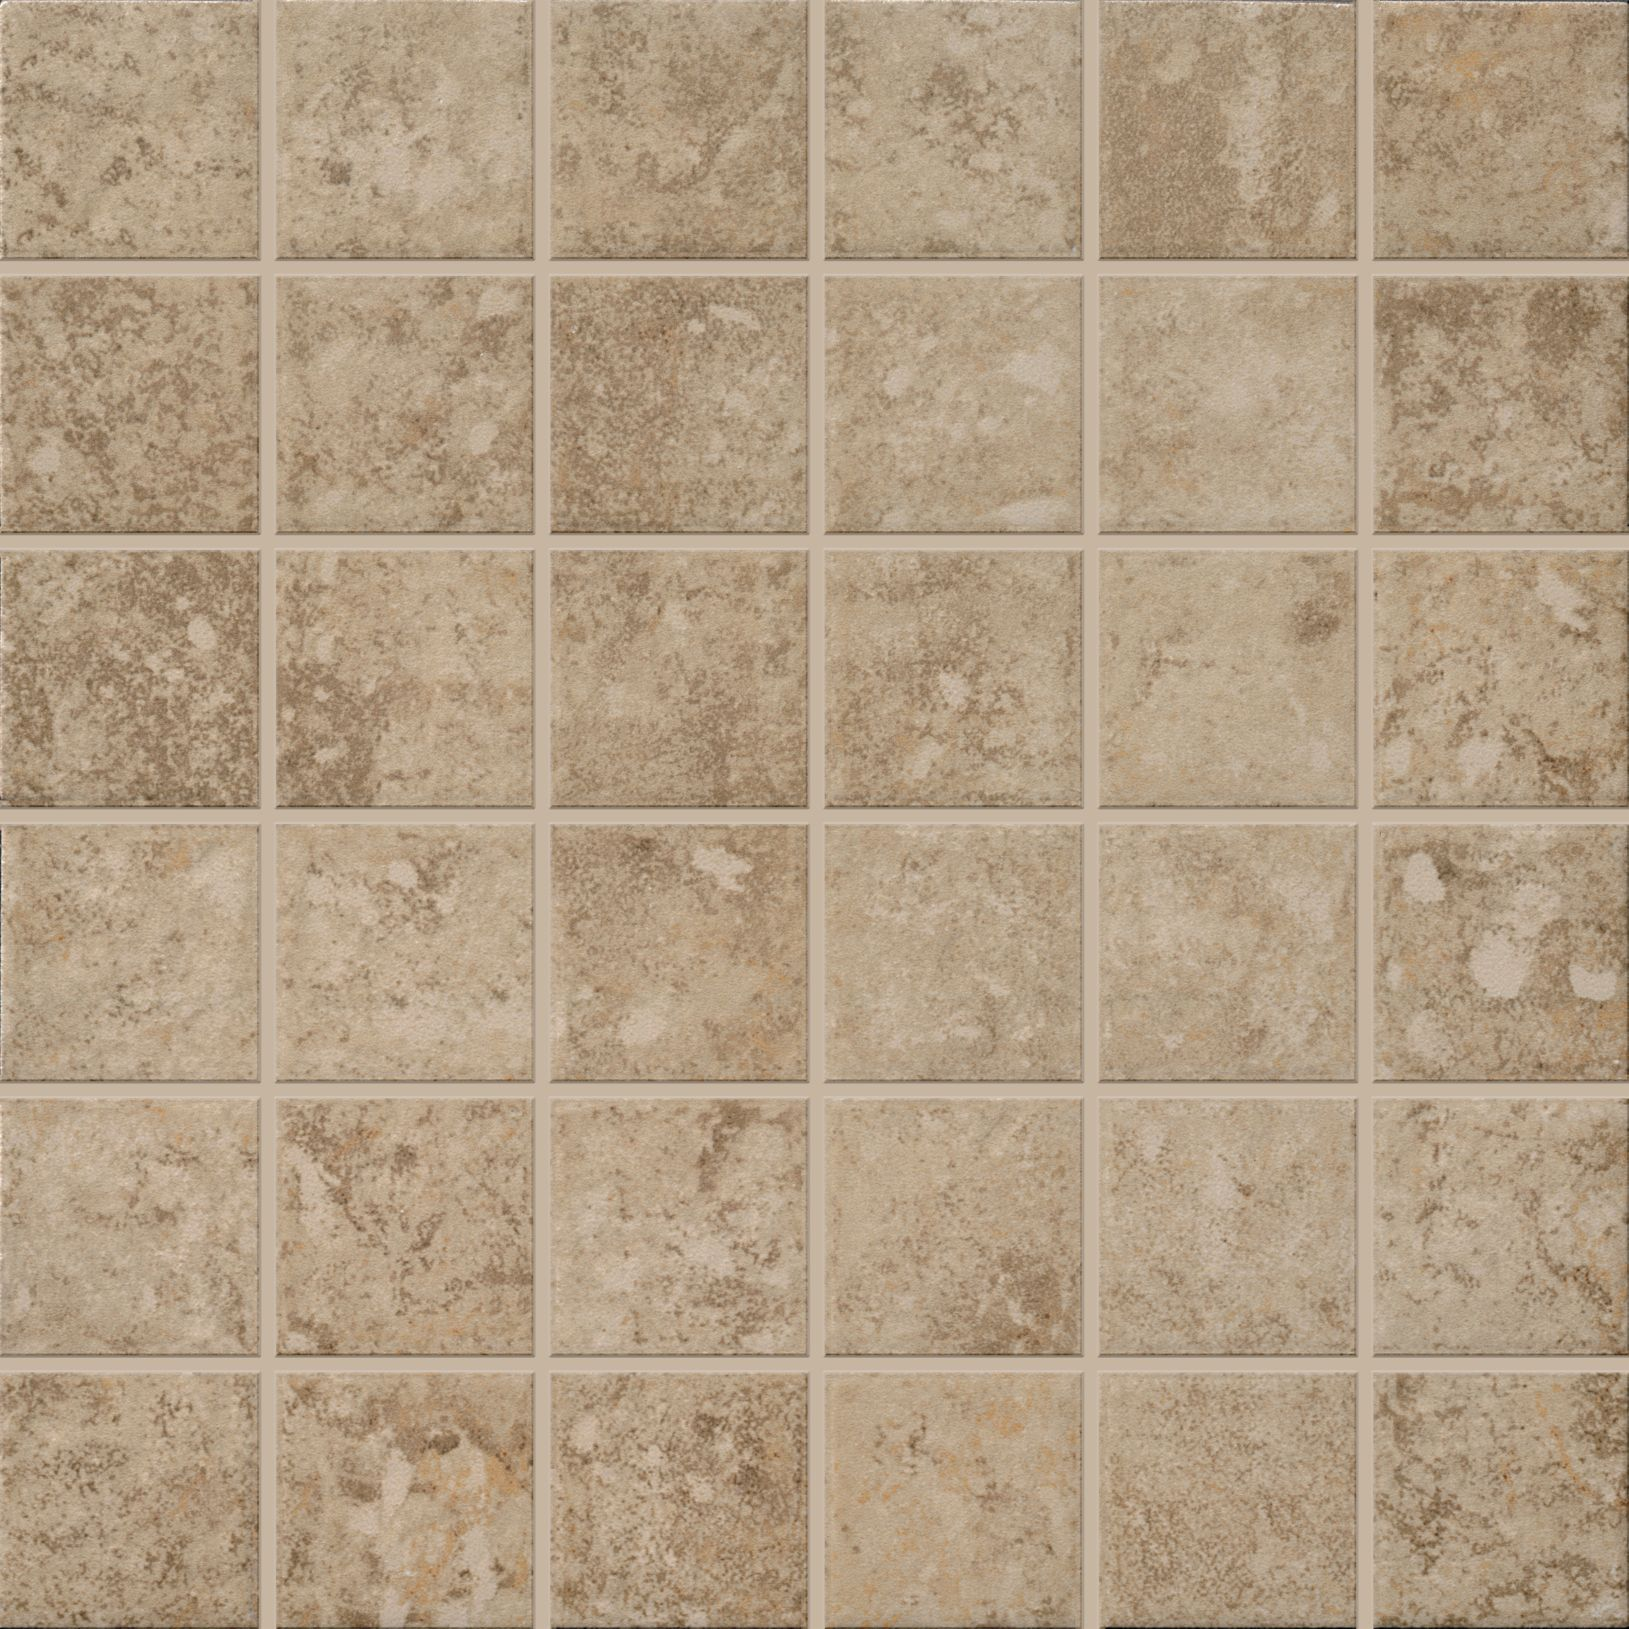 CeramicPorcelainTile Steppington T530-ST91 BaronialBeige